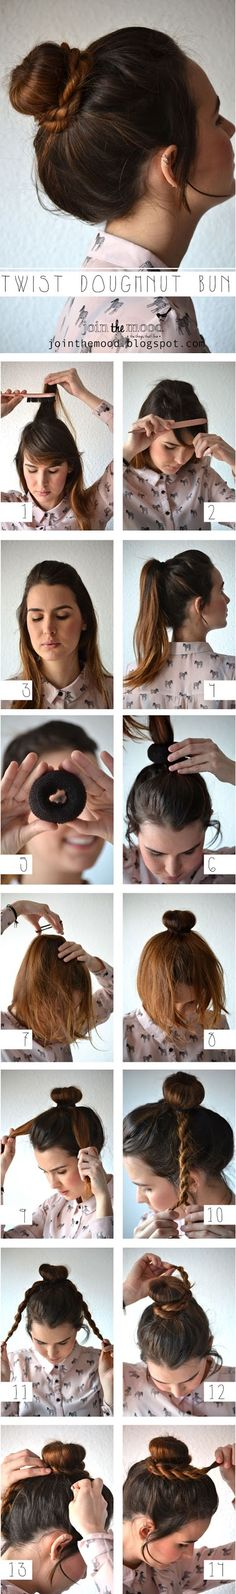 Twisted bun  #DIY #Hair